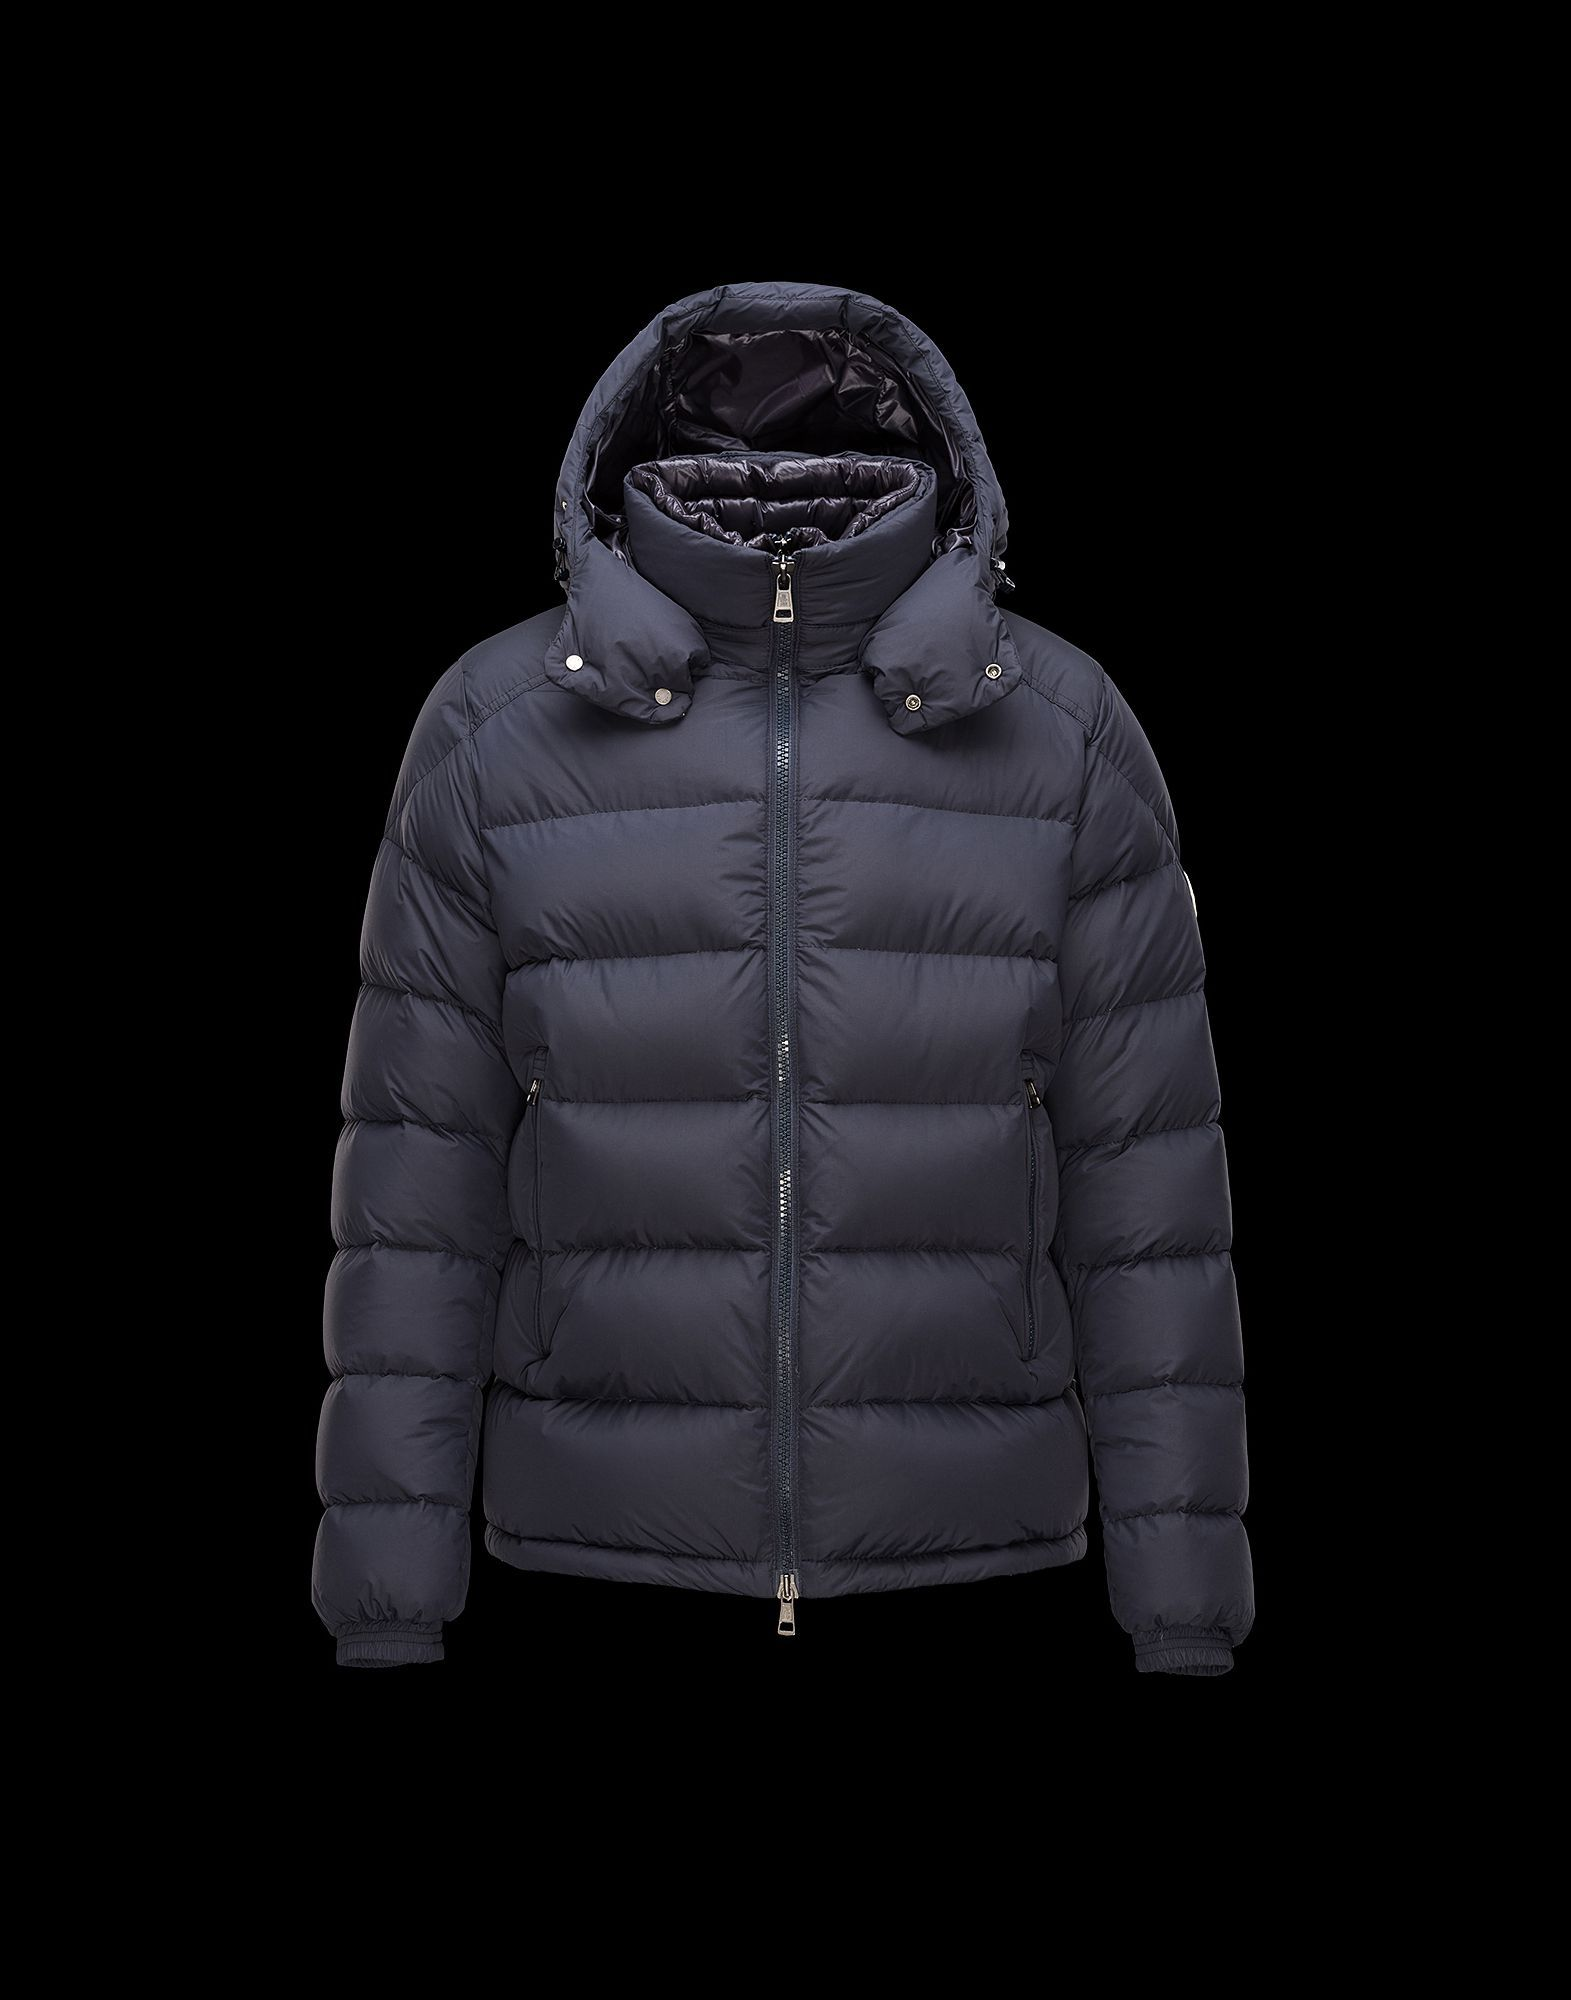 58d52166a Moncler brique in 2019 | My wardrobe | Jackets, Moncler, Winter jackets